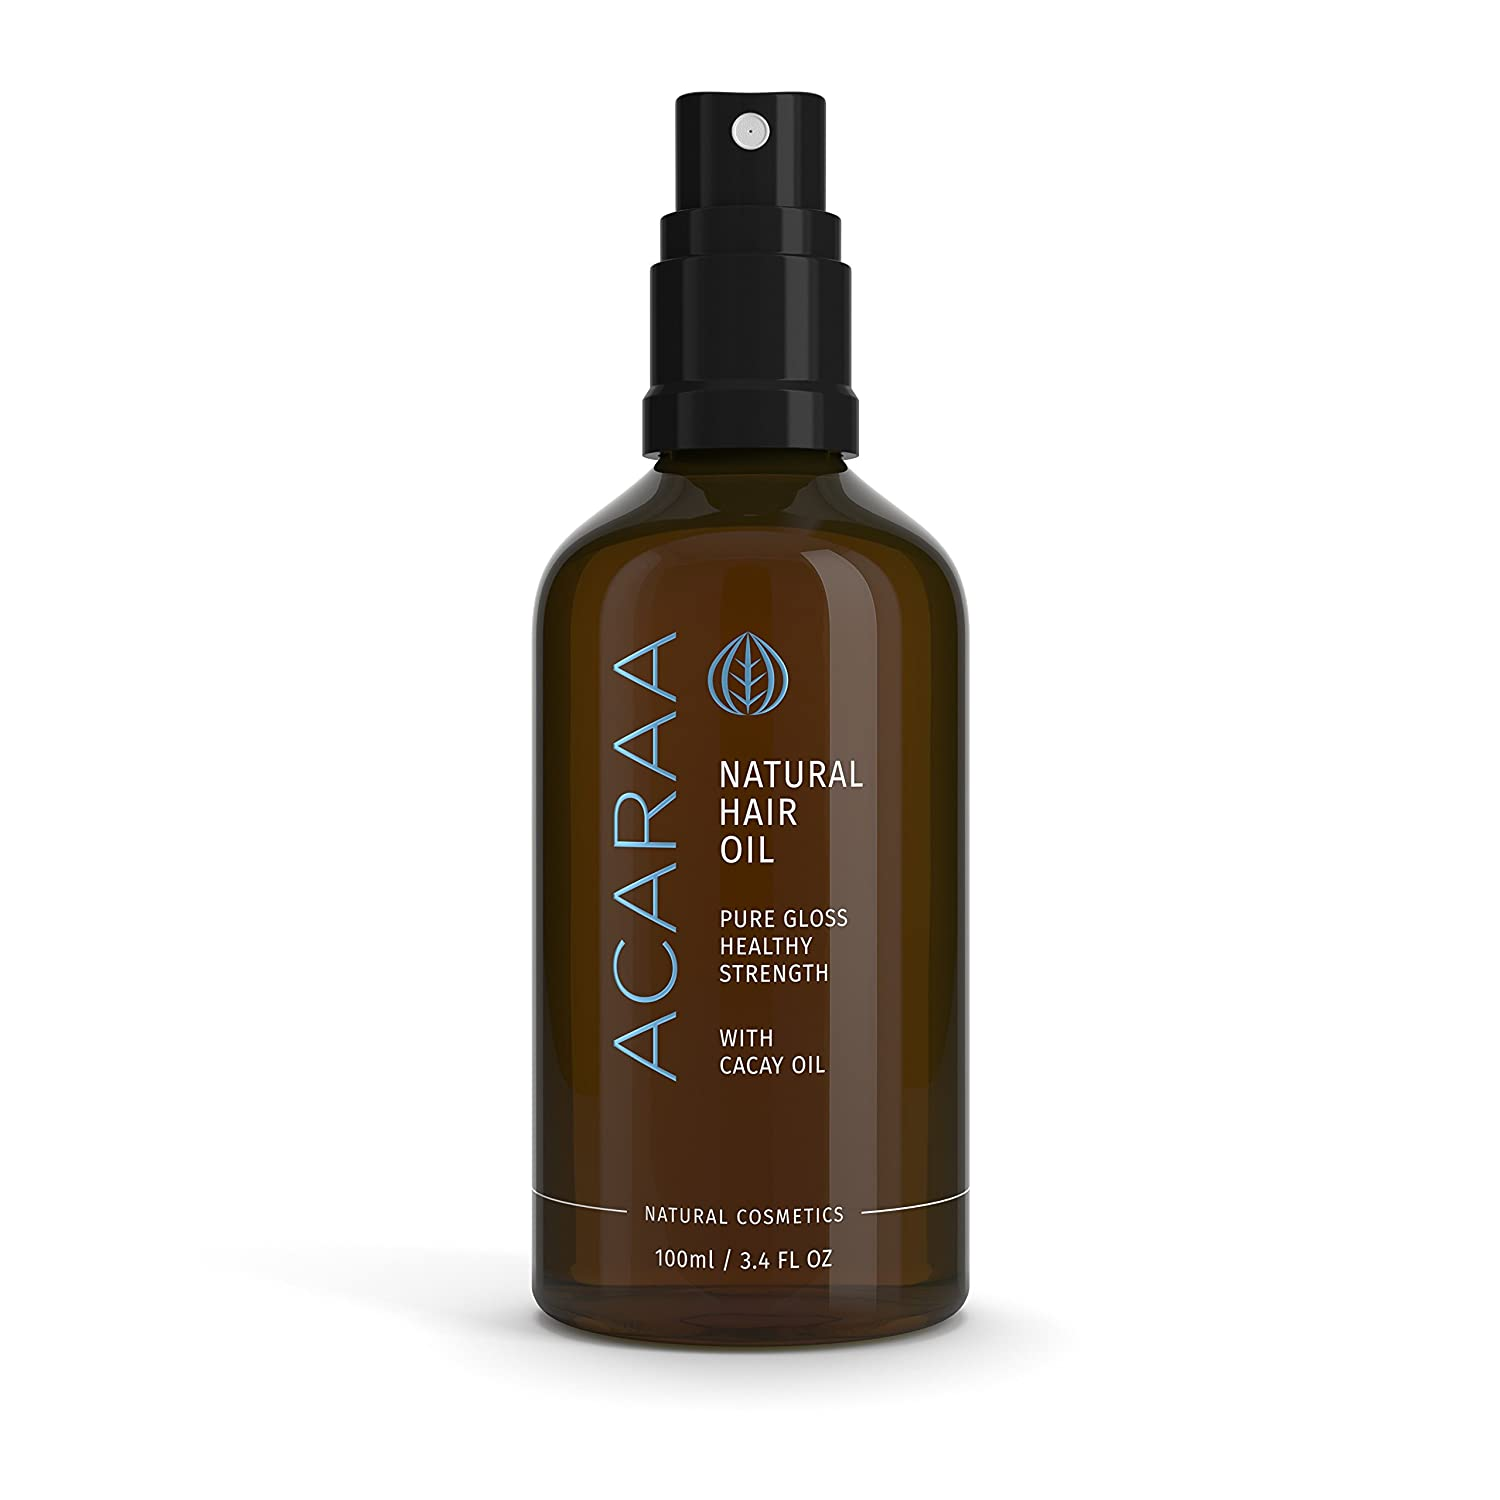 ACARAA Hair Oil Organic, Leave In Conditioner For Dry Hair With Argan Oil, Almond Oil & Jojoba Oil, Oil Treatment For Hair Strength, Non Greasy Hair Oil, Natural Cosmetics Made In Germany, 3.4 oz Bonstato Inc.